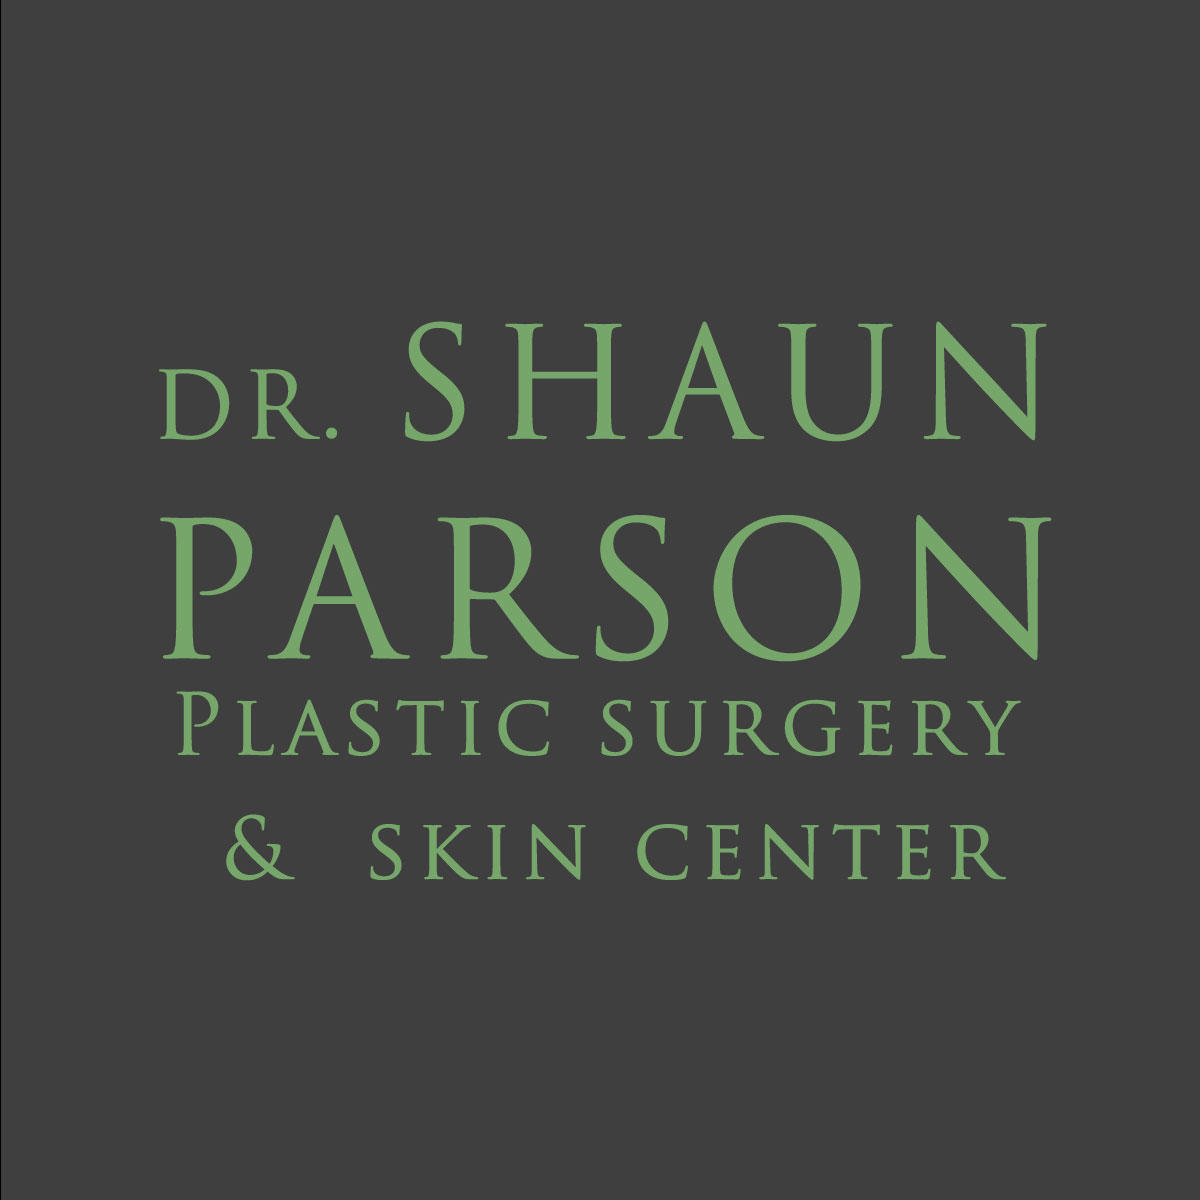 Dr. Shaun Parson Plastic Surgery and Skin Center